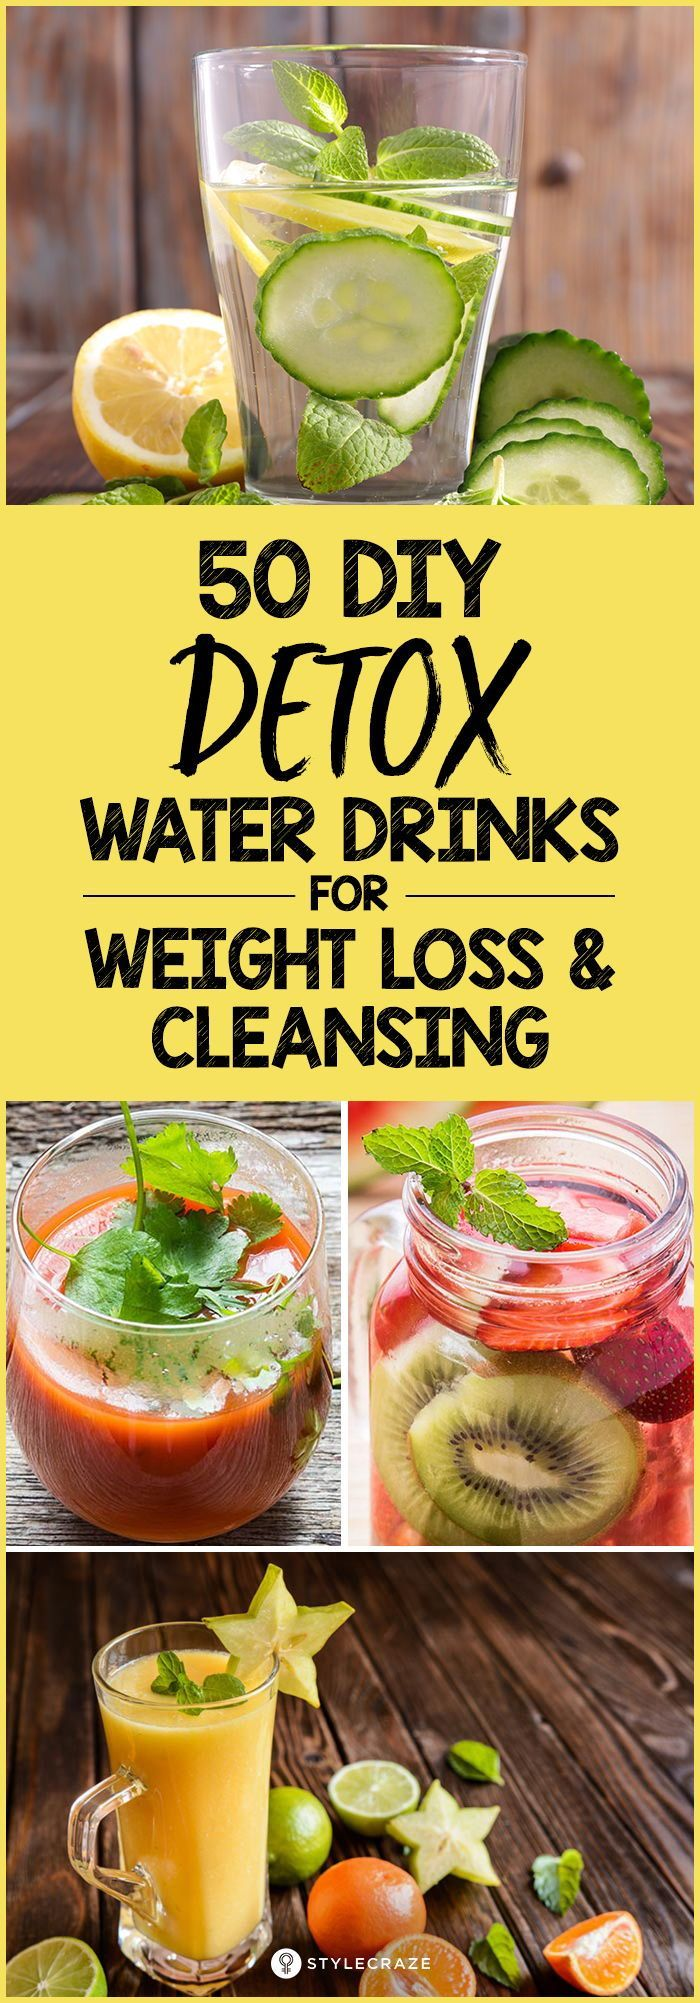 Detox Drinks: 10 DIY Natural Detox Recipes For Weight Loss